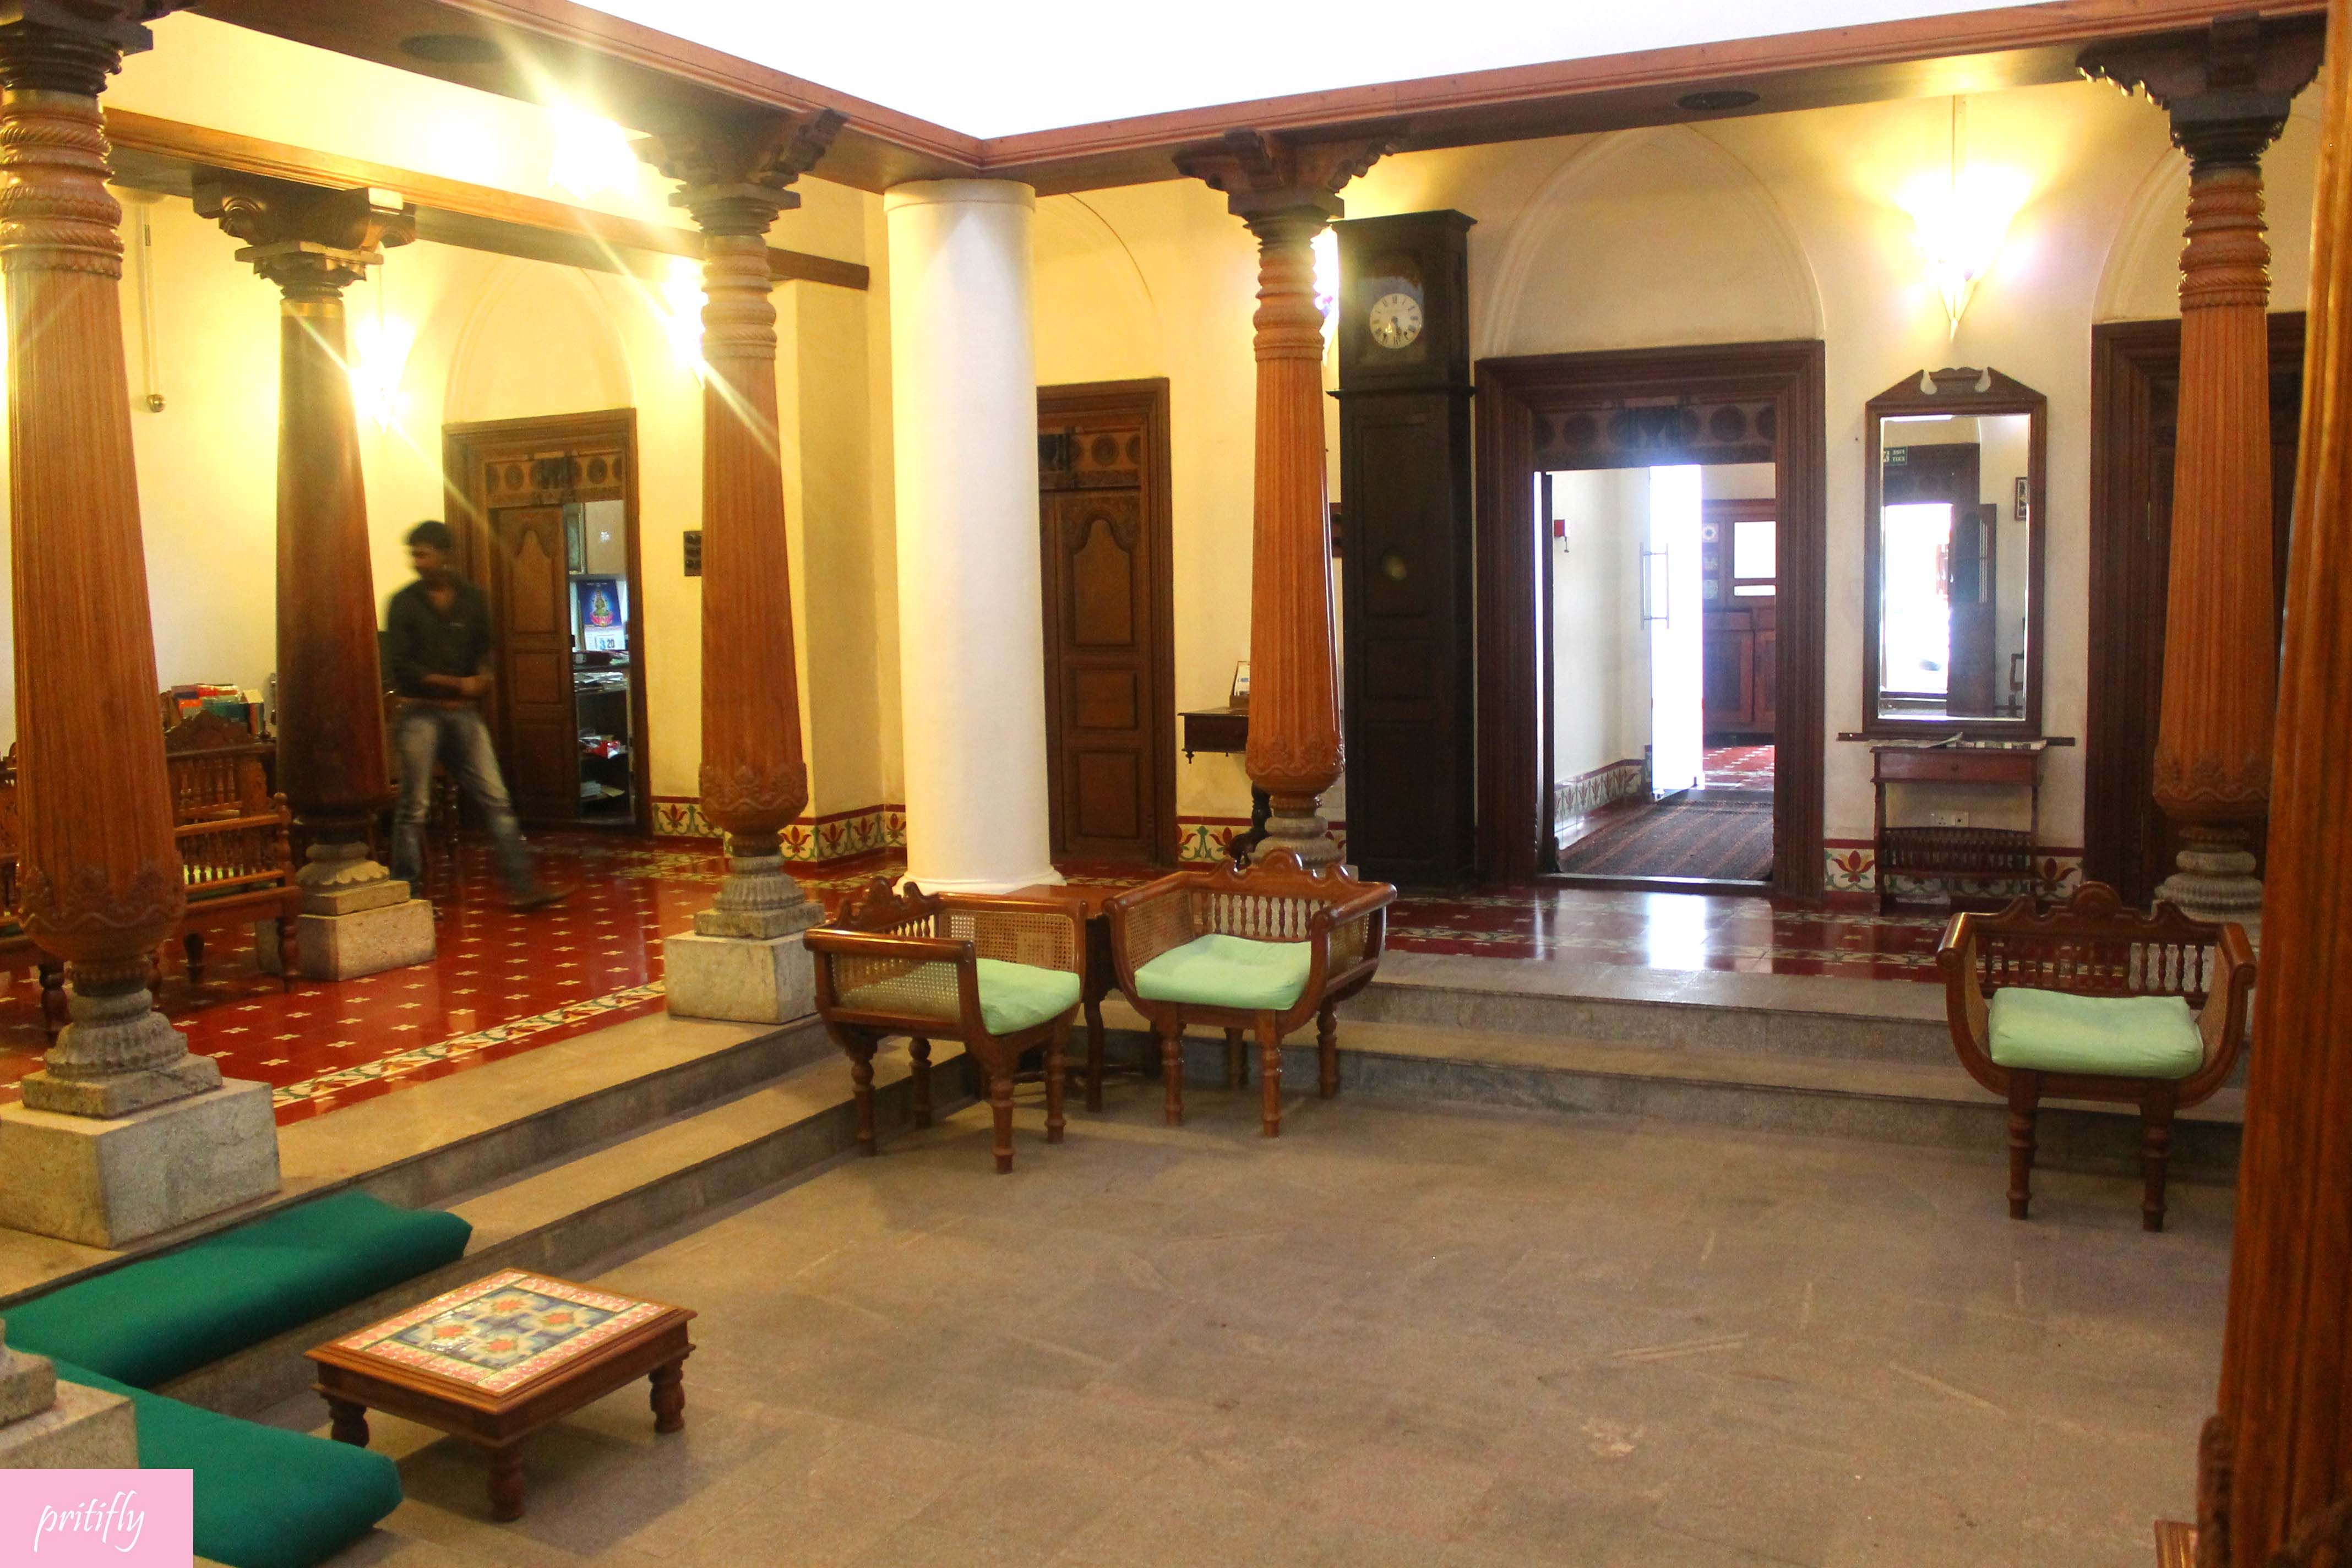 indian old houses interior decoration Google Search Ideas for